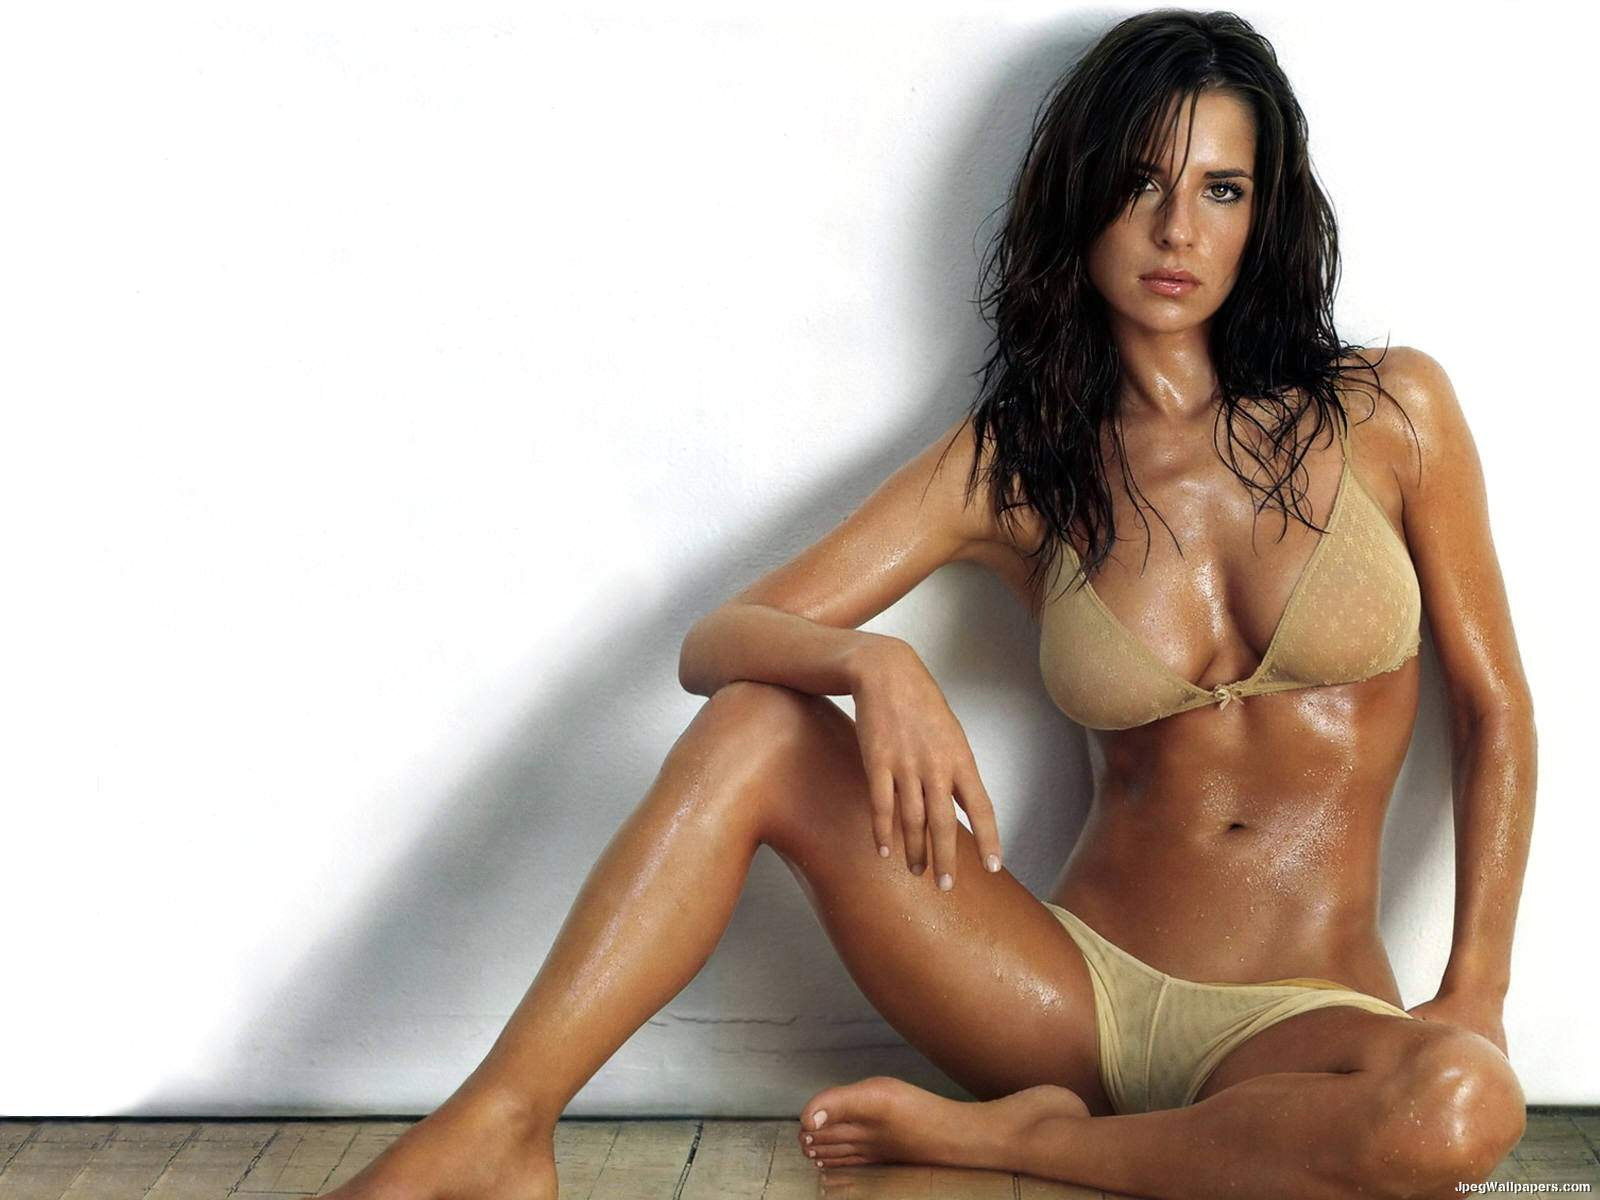 Philadelphia, Pennsylvania, USA, 1976-05-23, Kelly Monaco